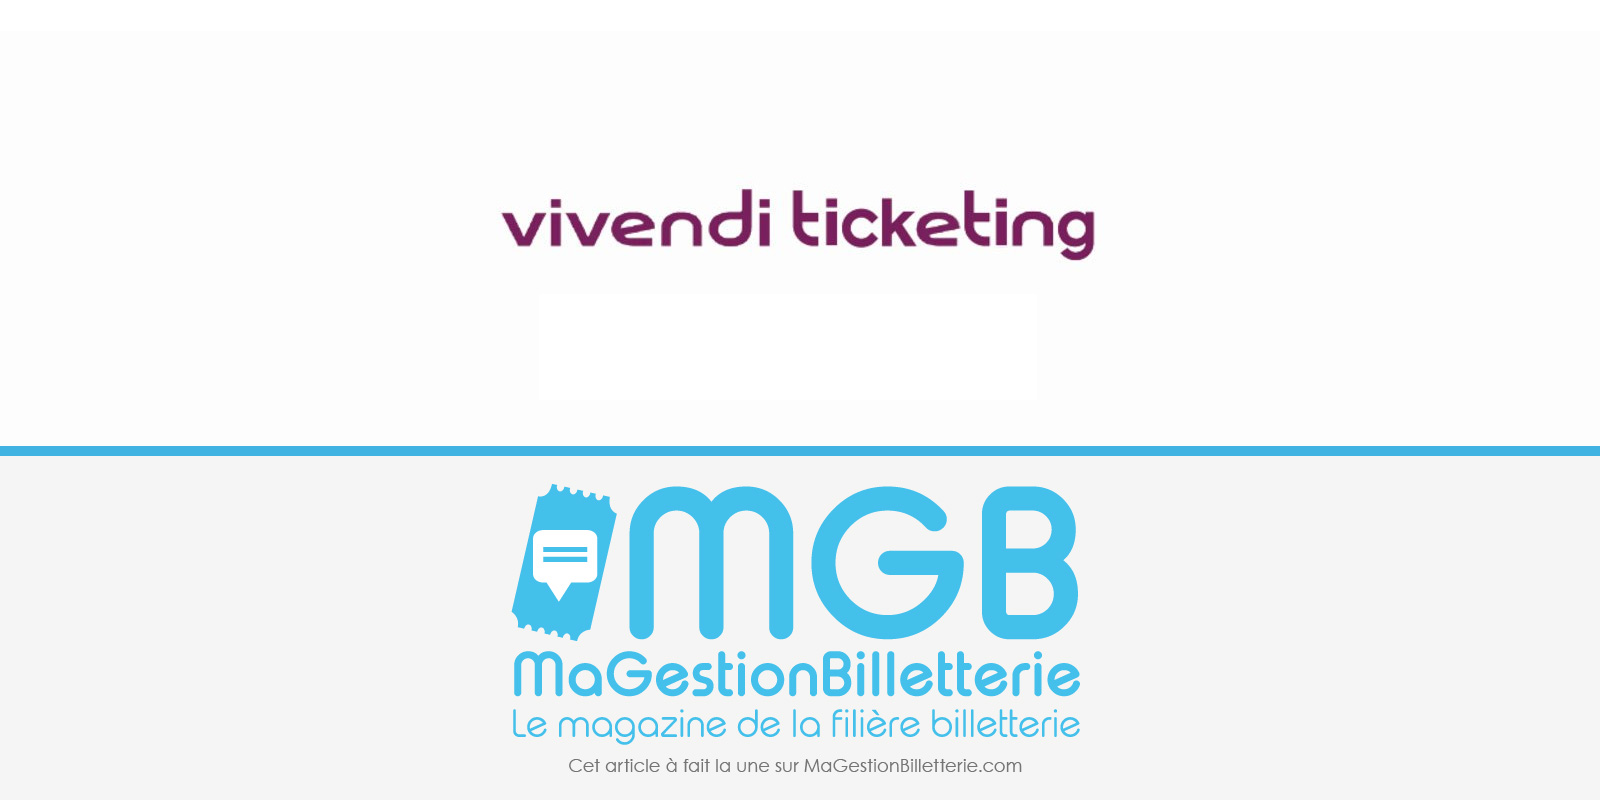 vivendi-ticketing-une5